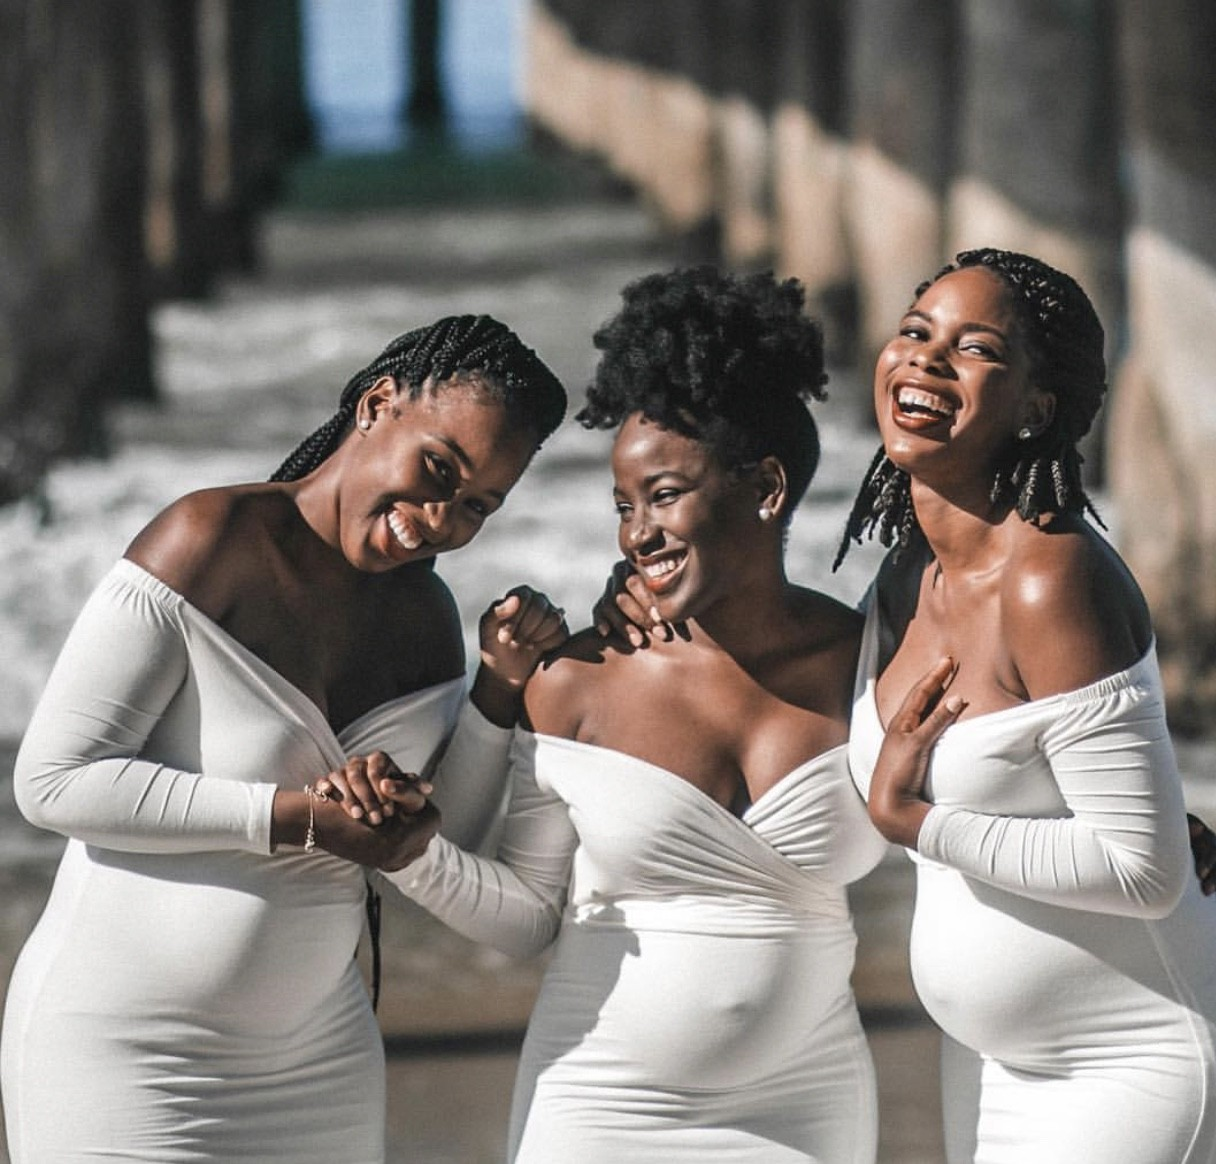 Beautiful maternity photos of 3 pregnant sisters